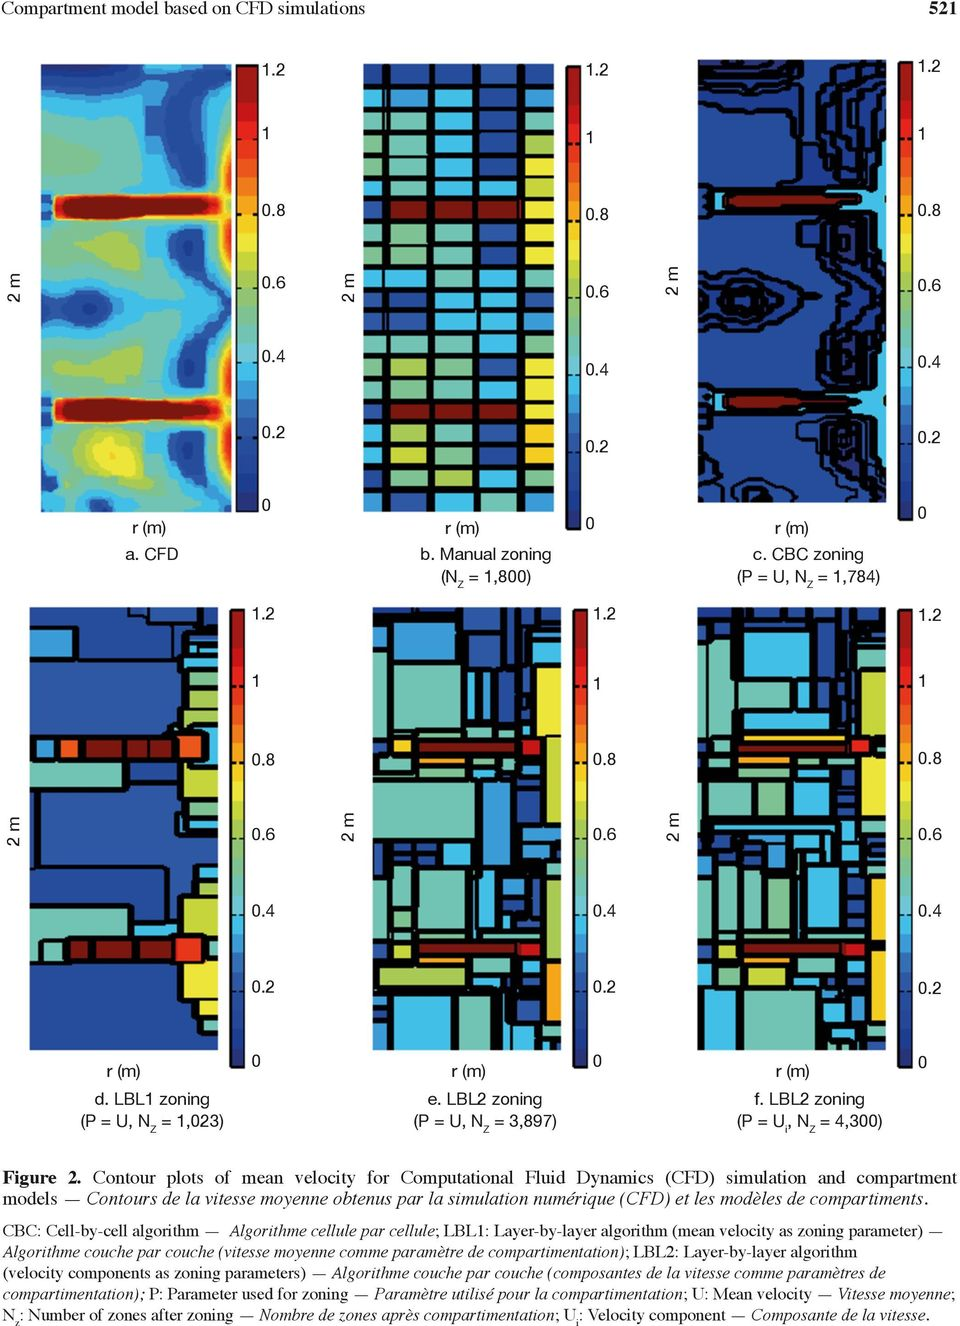 Contour plots of mean velocity for Computational Fluid Dynamics (CFD) simulation and compartment models Contours de la vitesse moyenne obtenus par la simulation numérique (CFD) et les modèles de